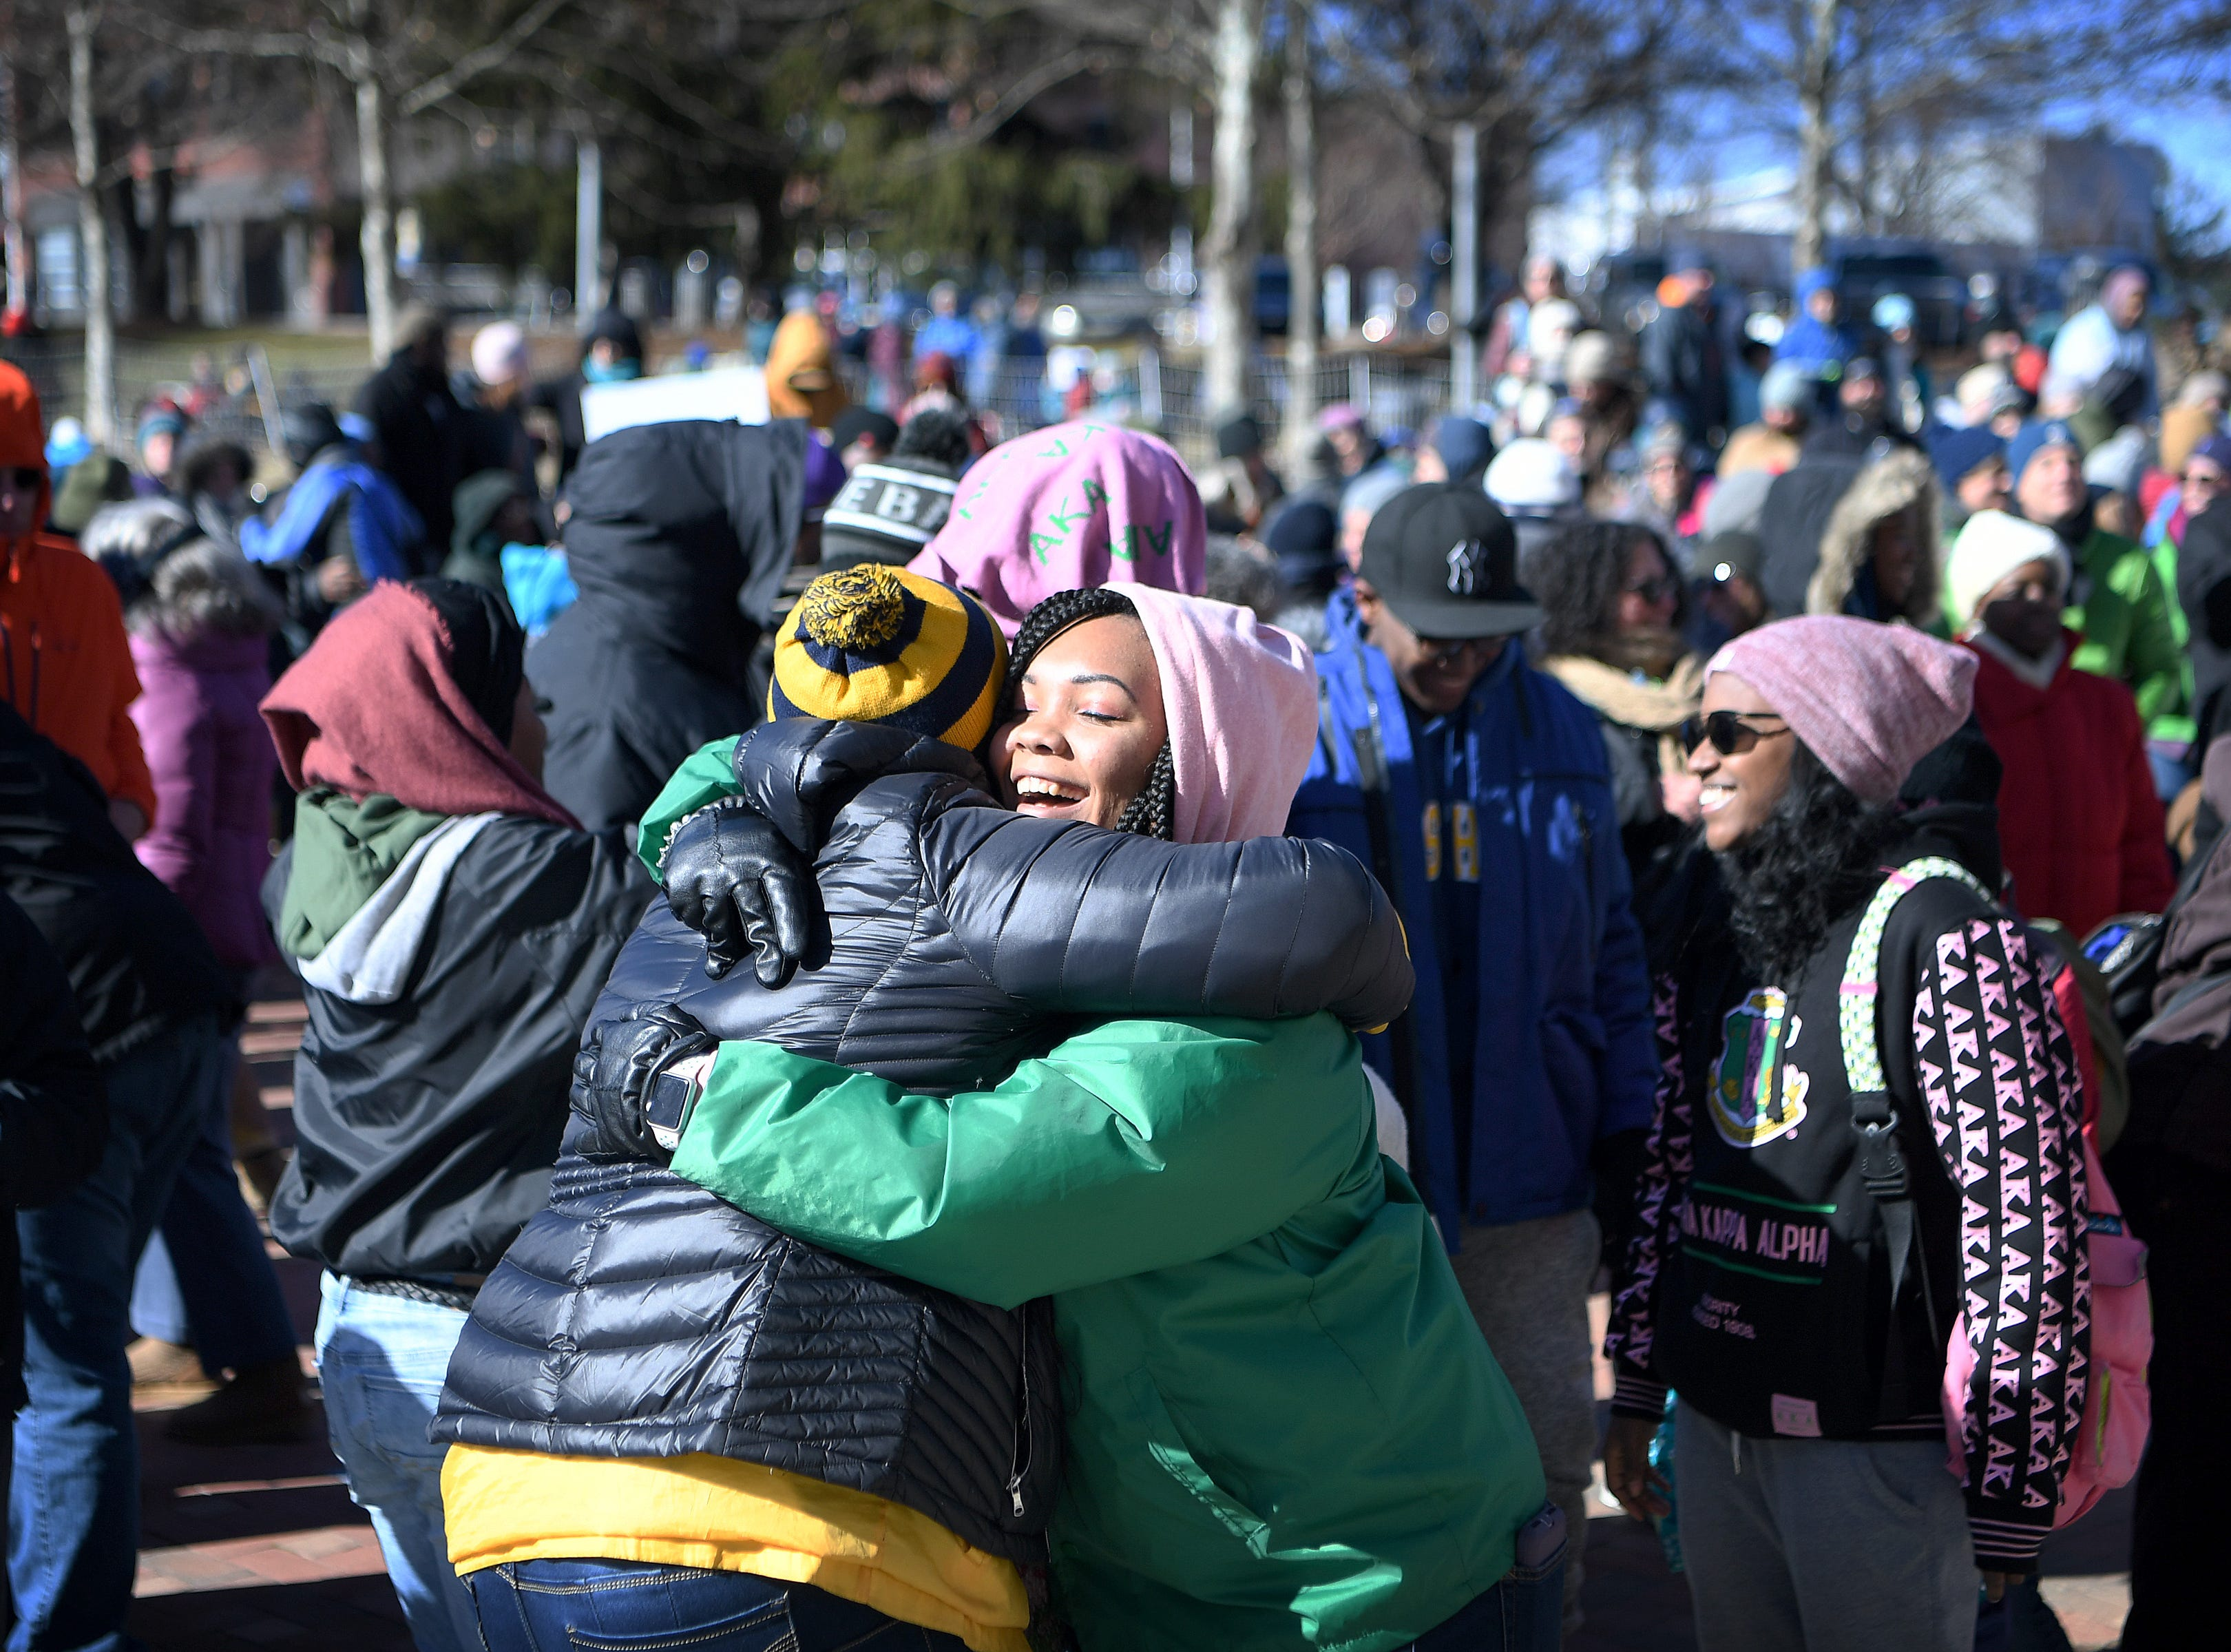 Patricia Mathes gives out a hug at the instruction of the speaker during the Dr. Martin Luther King, Jr. Peace March and Rally at Pack Square Park on Jan. 21, 2019.